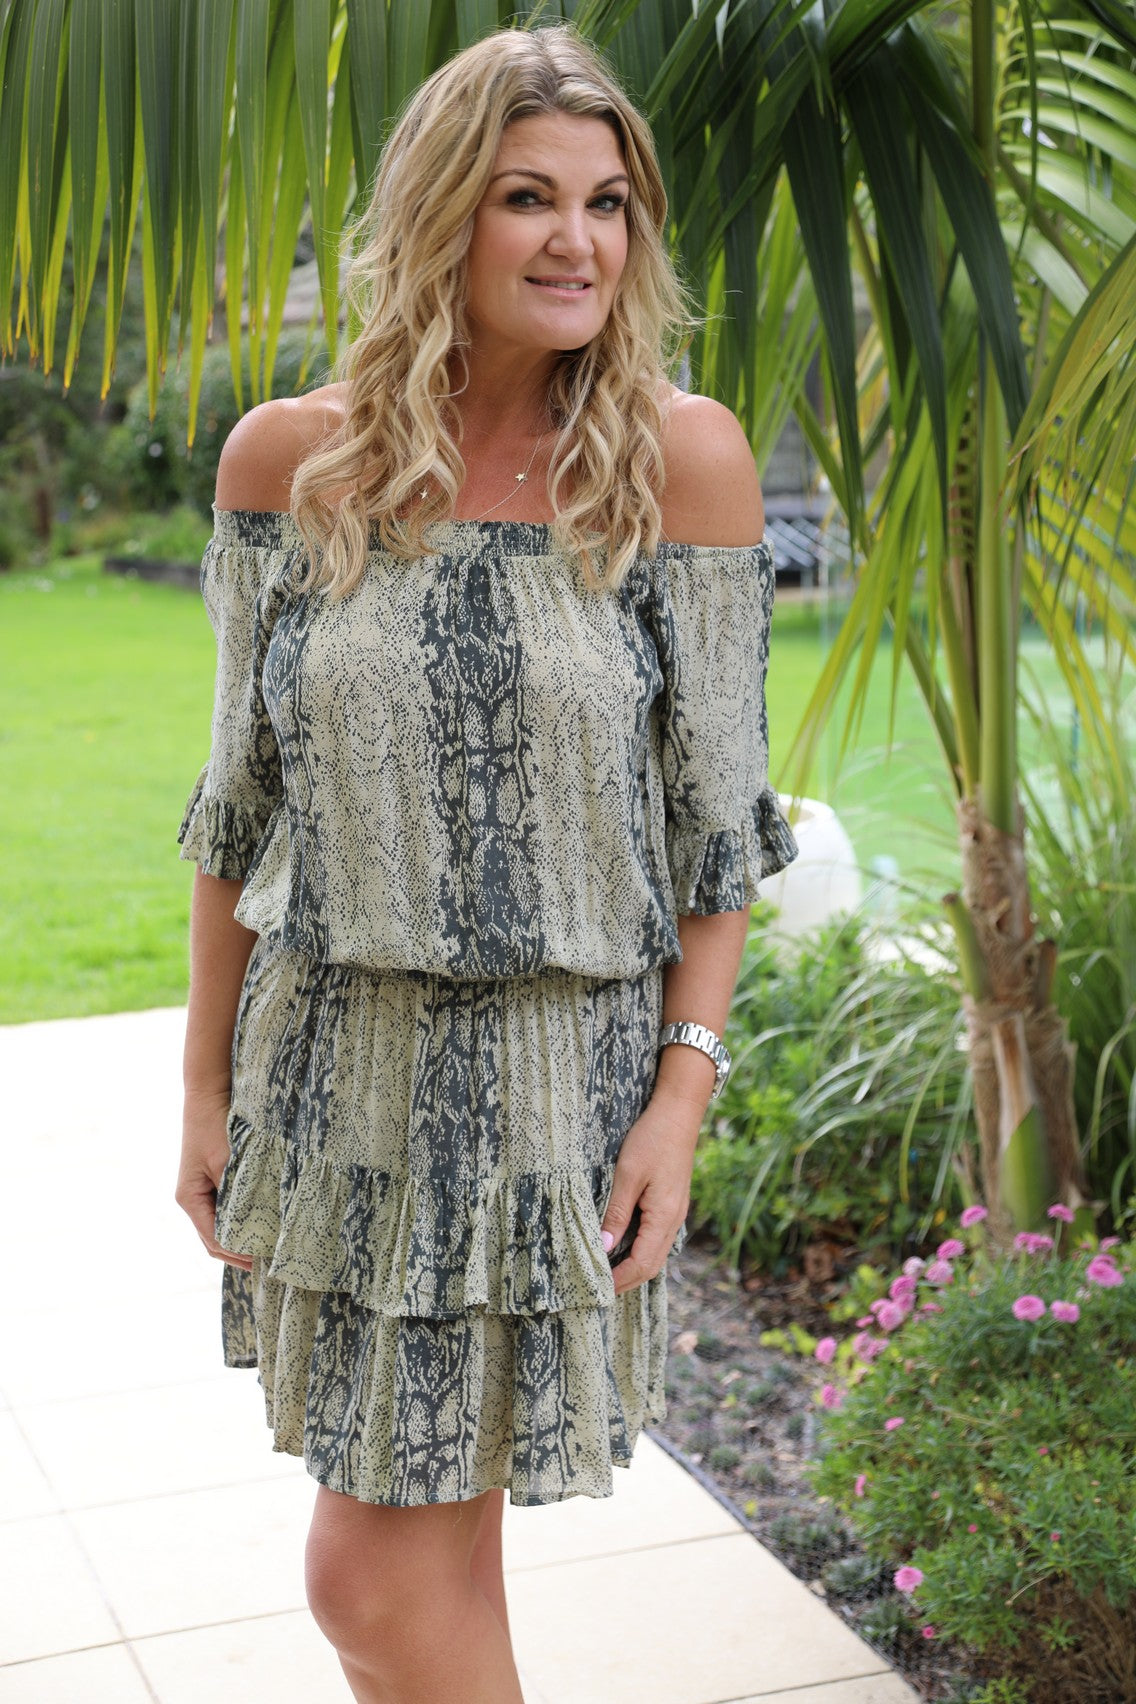 Little Frill Dress - Beige & Grey Snake Print